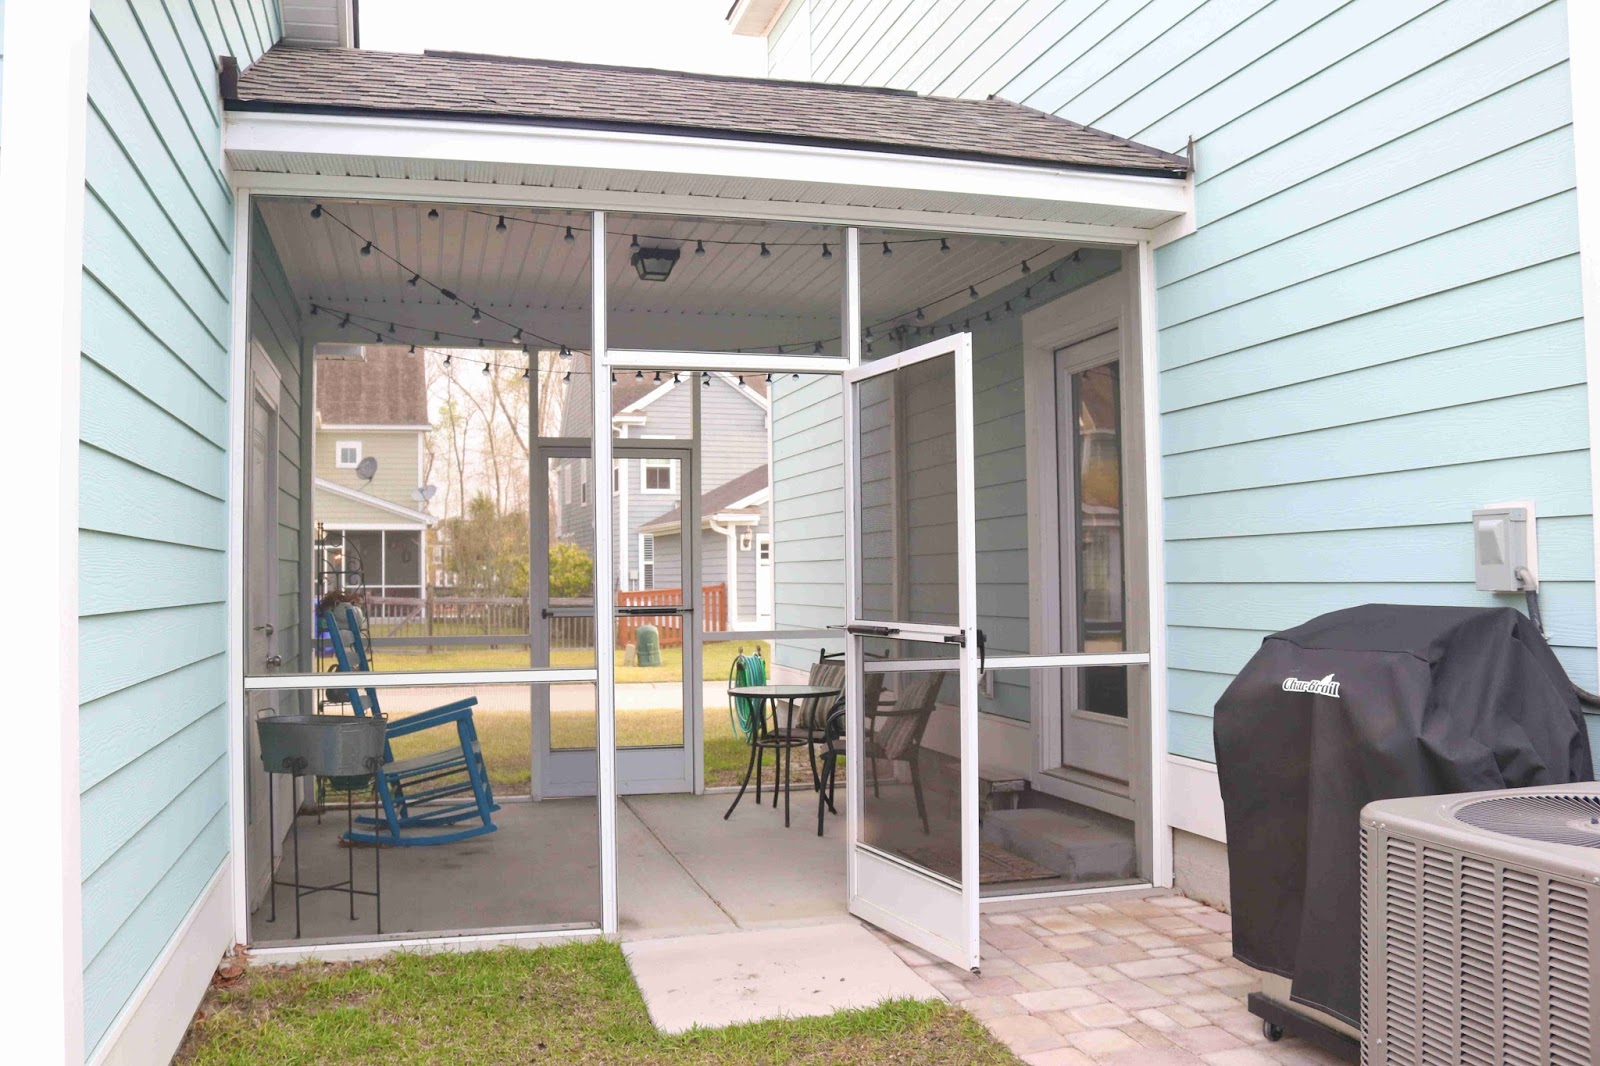 ... Be Redoing Is Our Back Breezeway That Connects Our House And Garage. We  Have A Detached Garage That Faces An Alley Behind Our House. (All Of The  Homes ...